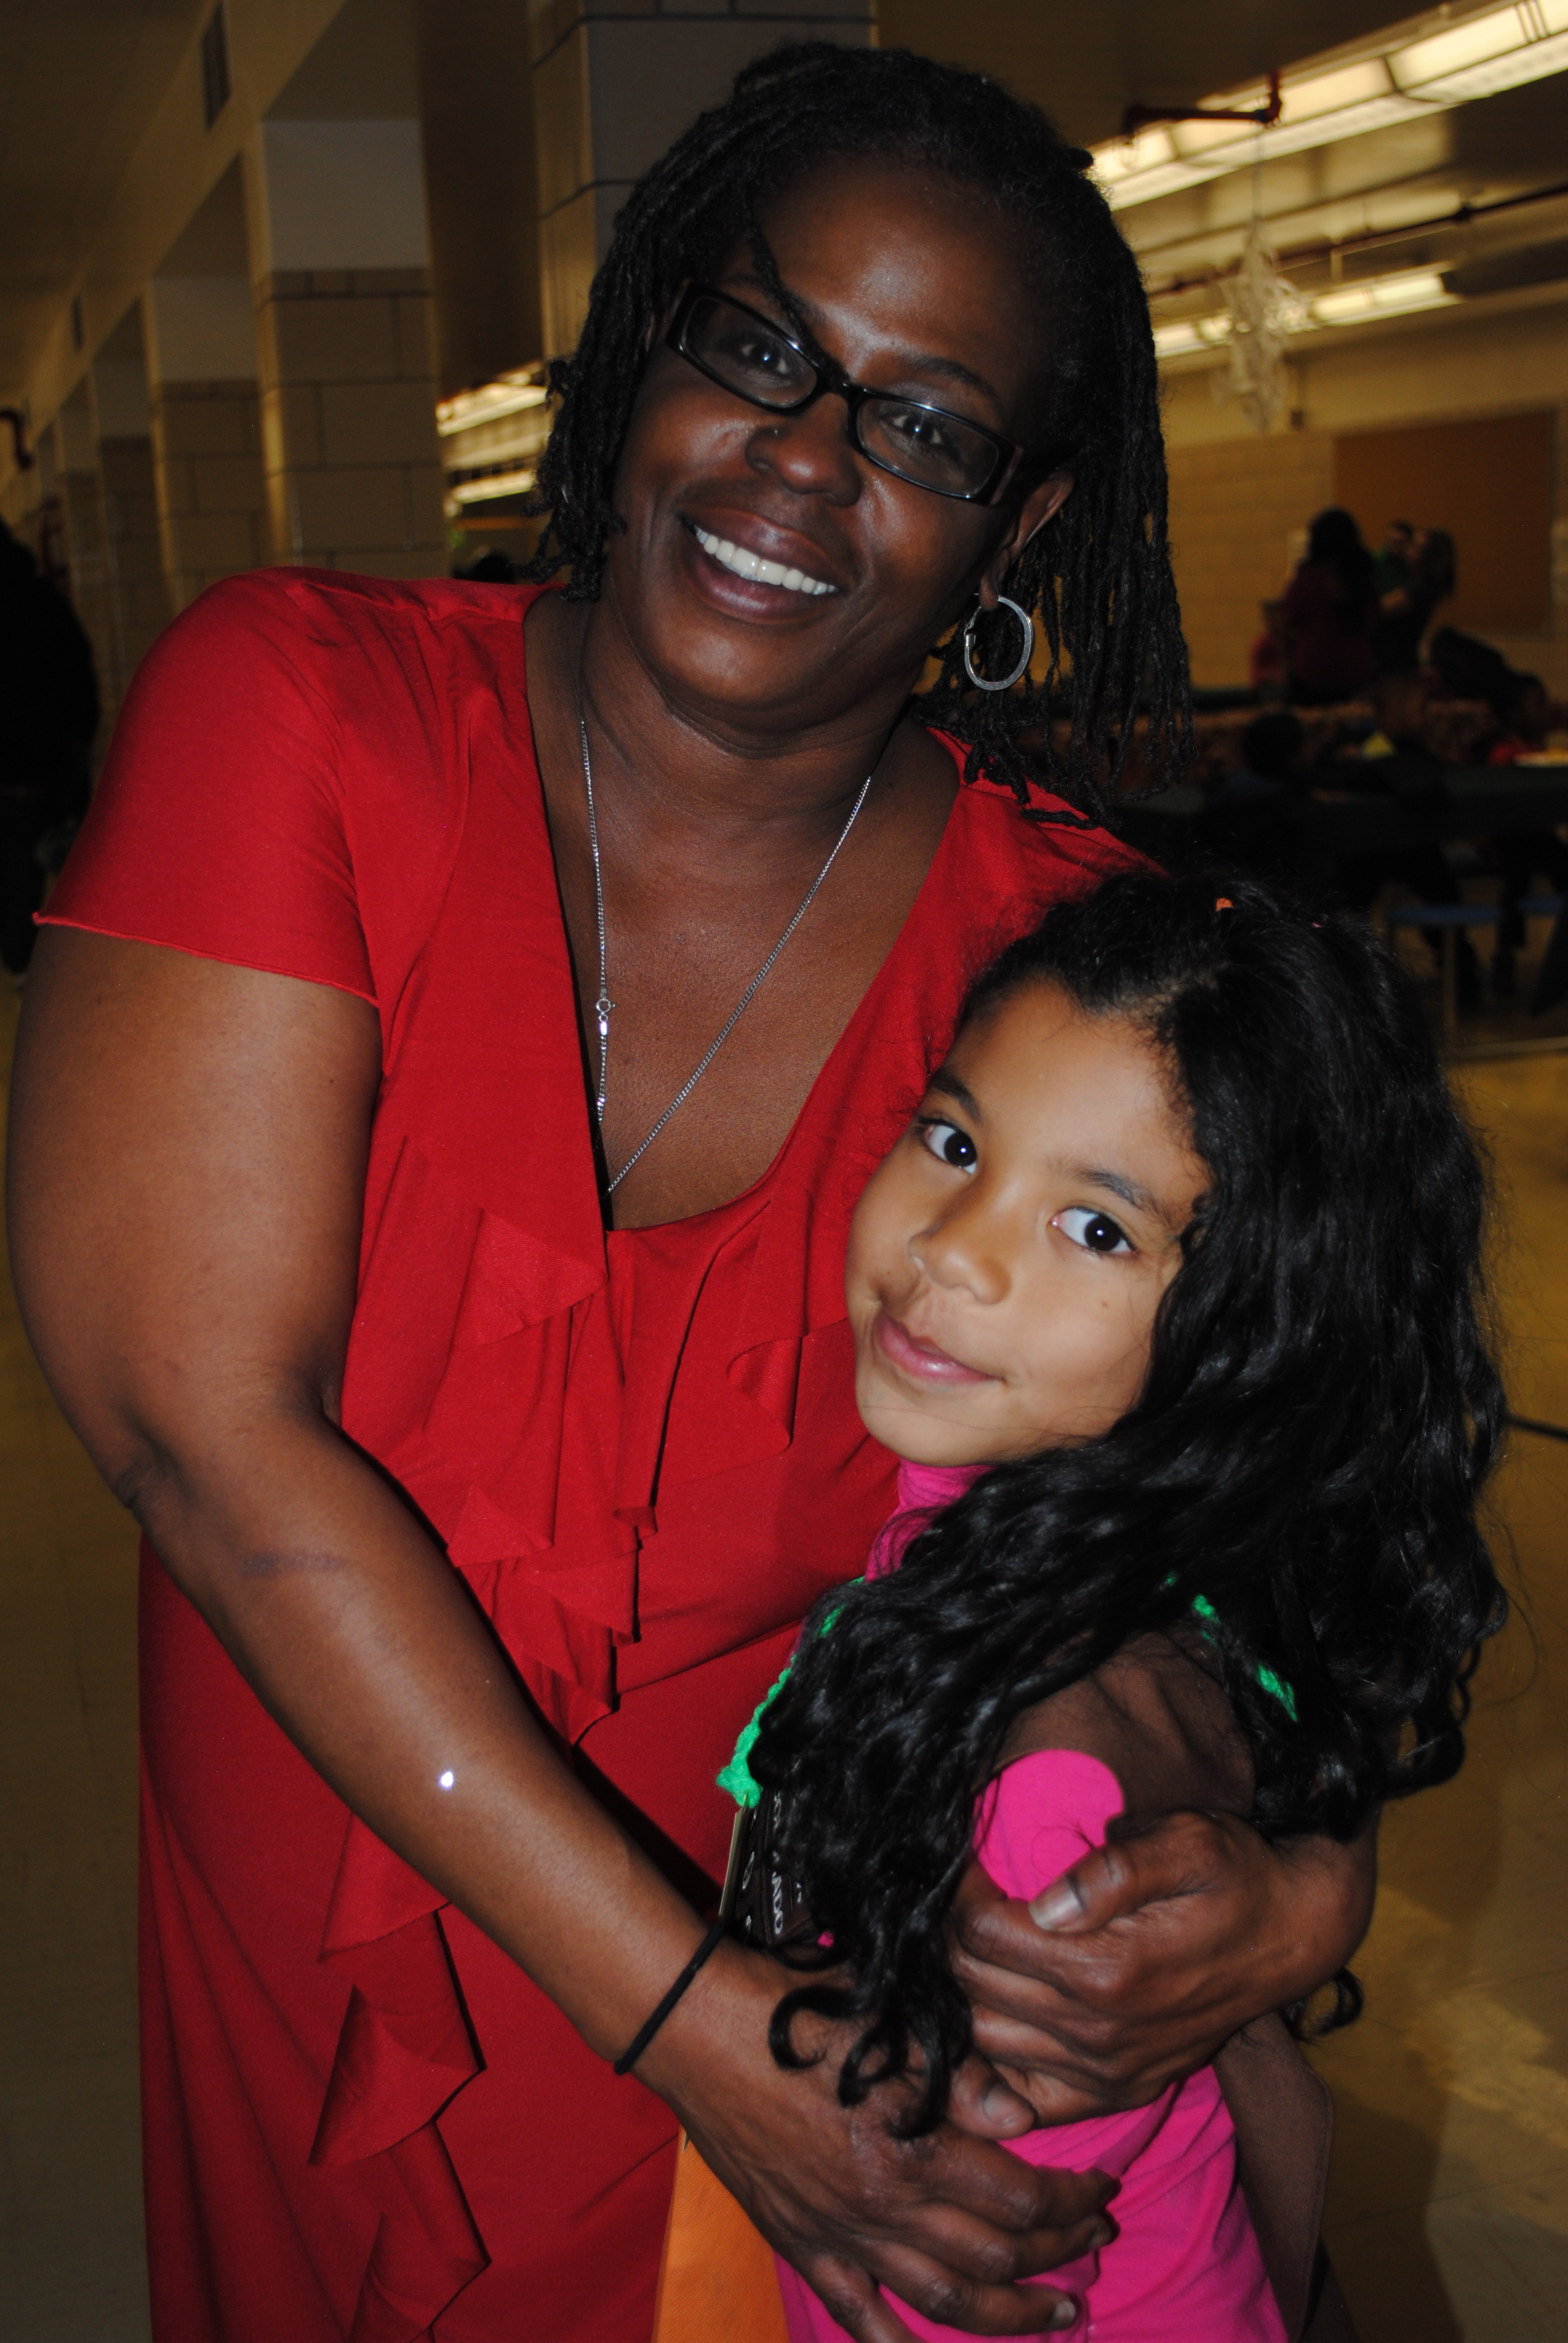 A woman with her arms around a girl, both smiling at the camera